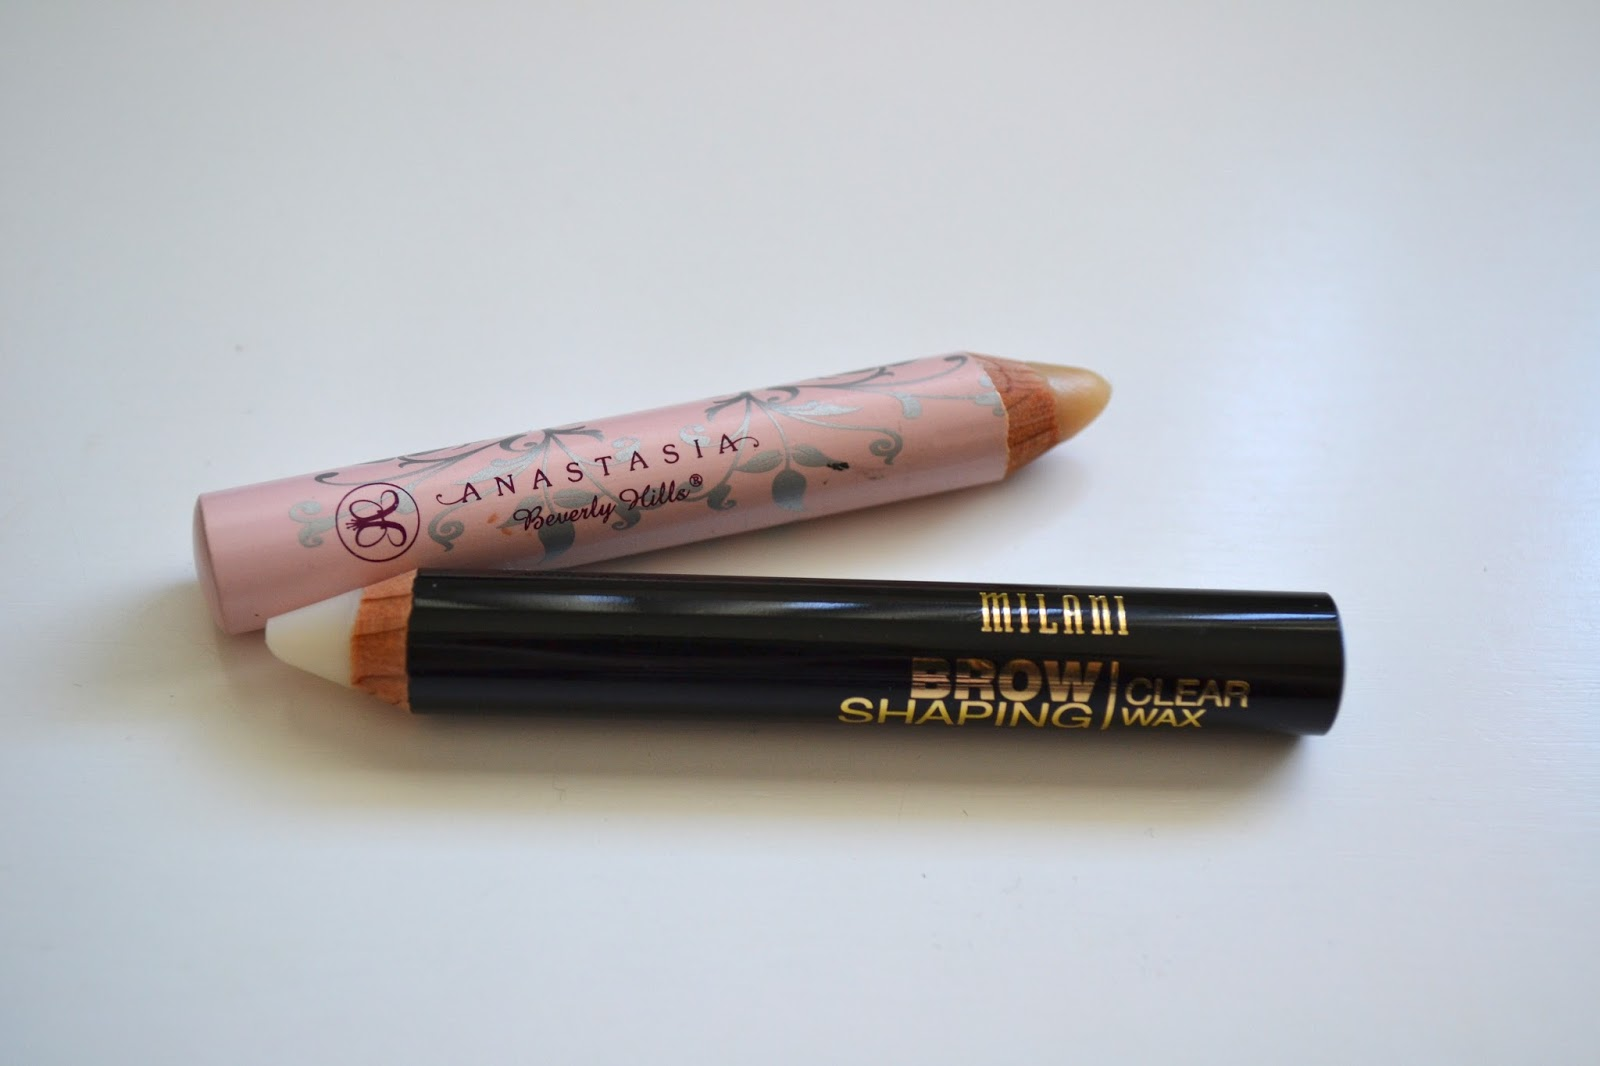 Milani Cosmetics Brow Shaping Clear Wax - Photos and Review ...